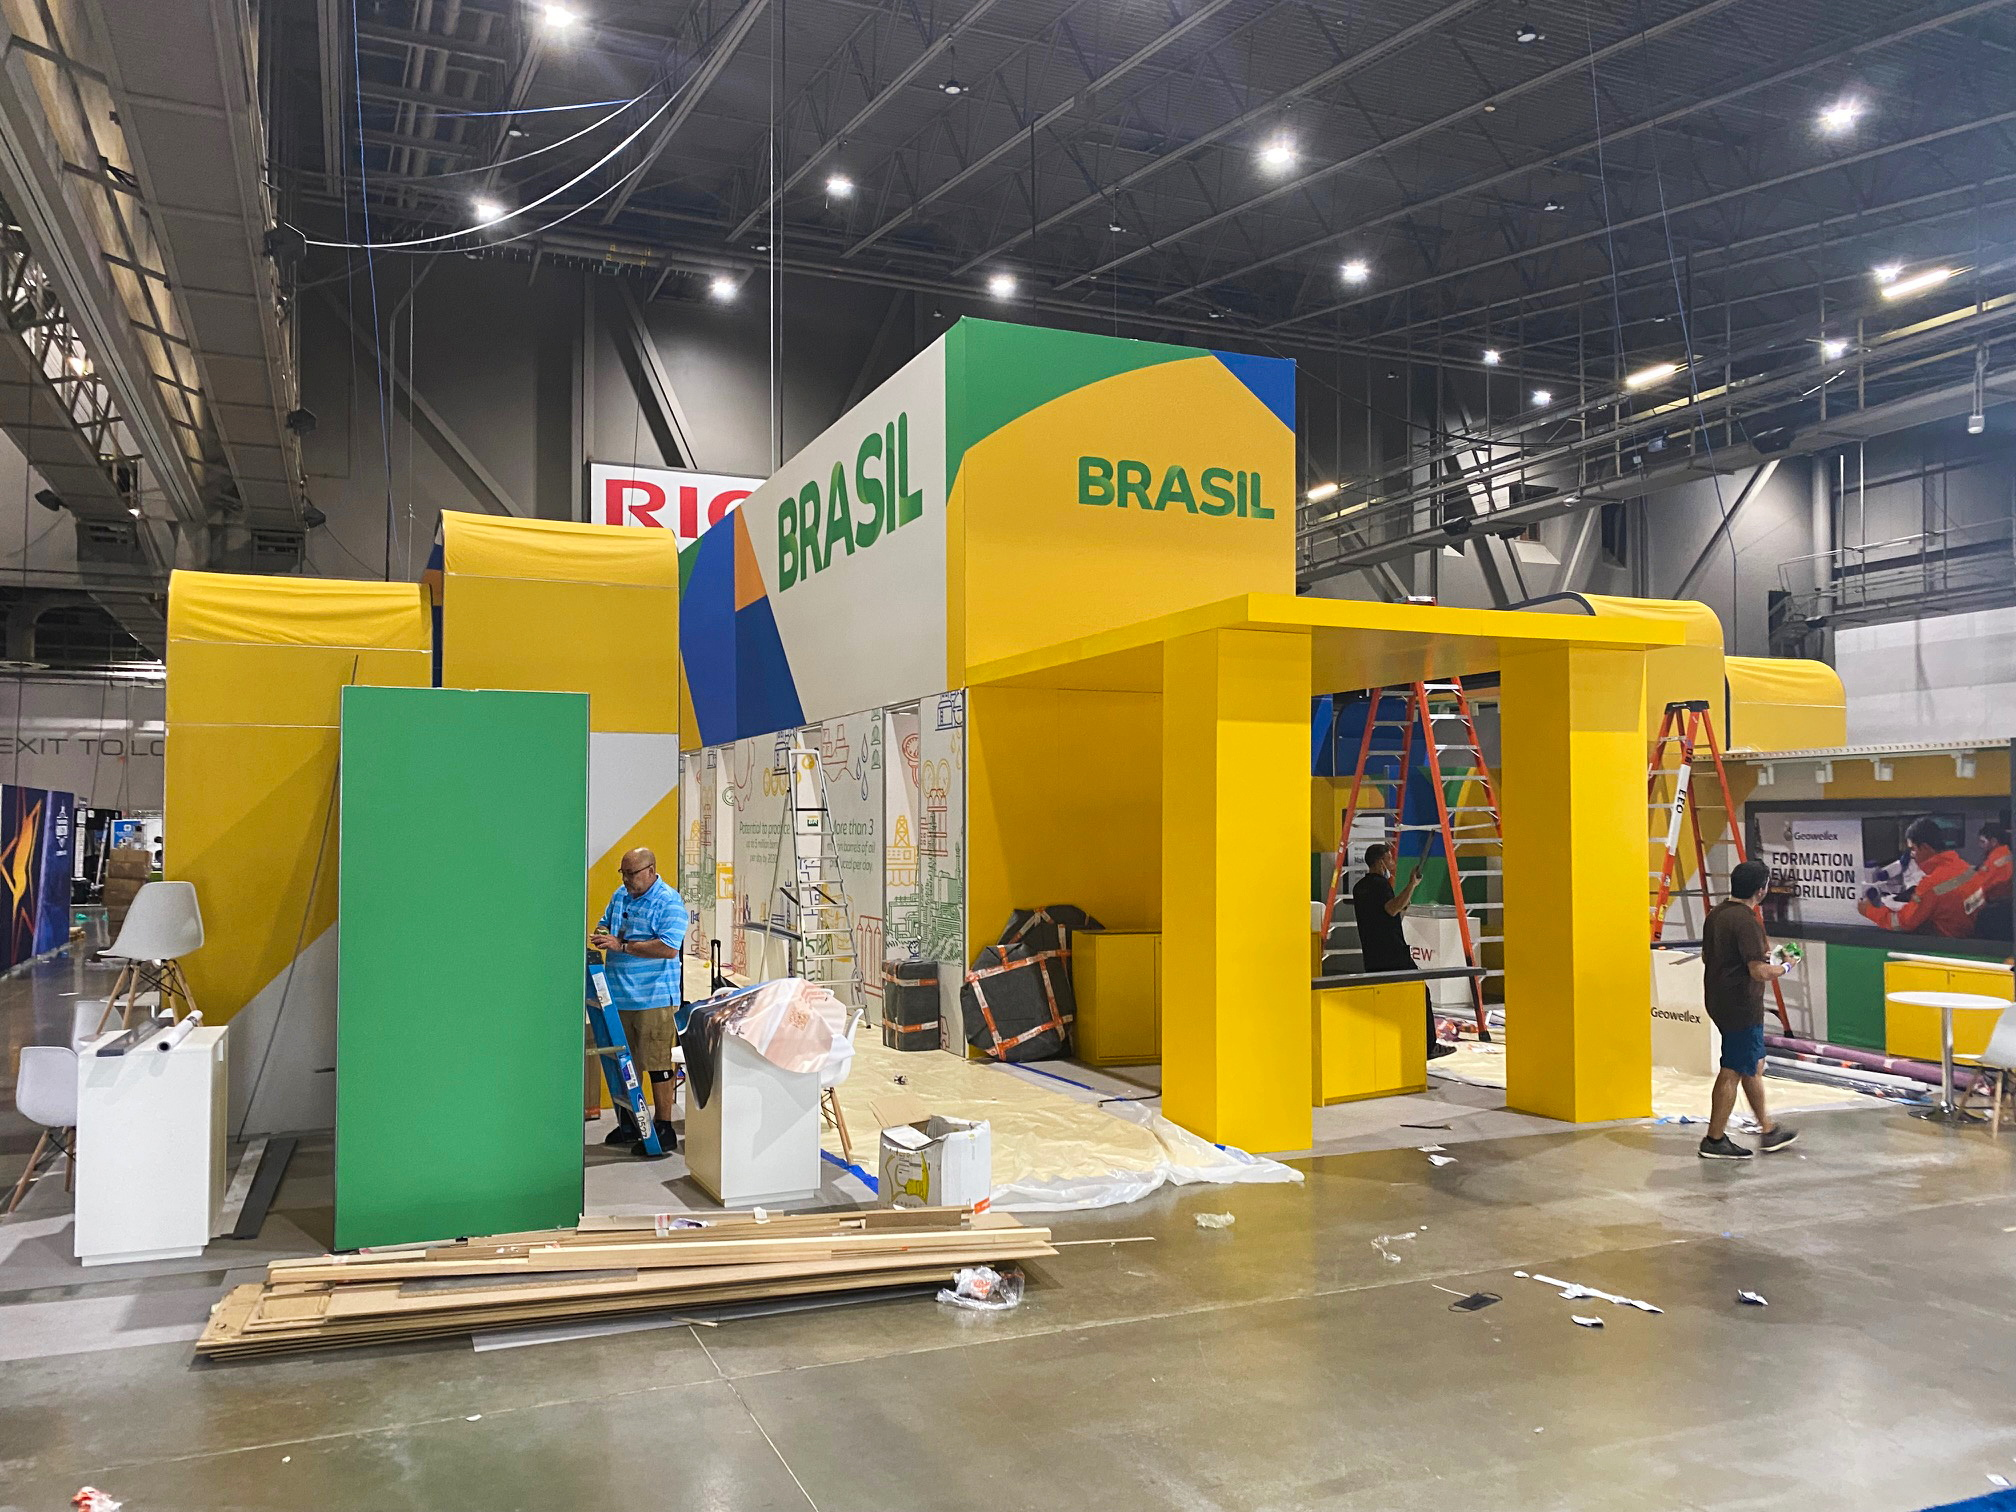 Workers assemble an exhibit booth for Brazil to showcase its offshore oil production at the Offshore Technology Conference in Houston, Texas, U.S., August 14, 2021. The energy industry showcase opens on Monday. REUTERS/Gary McWilliams